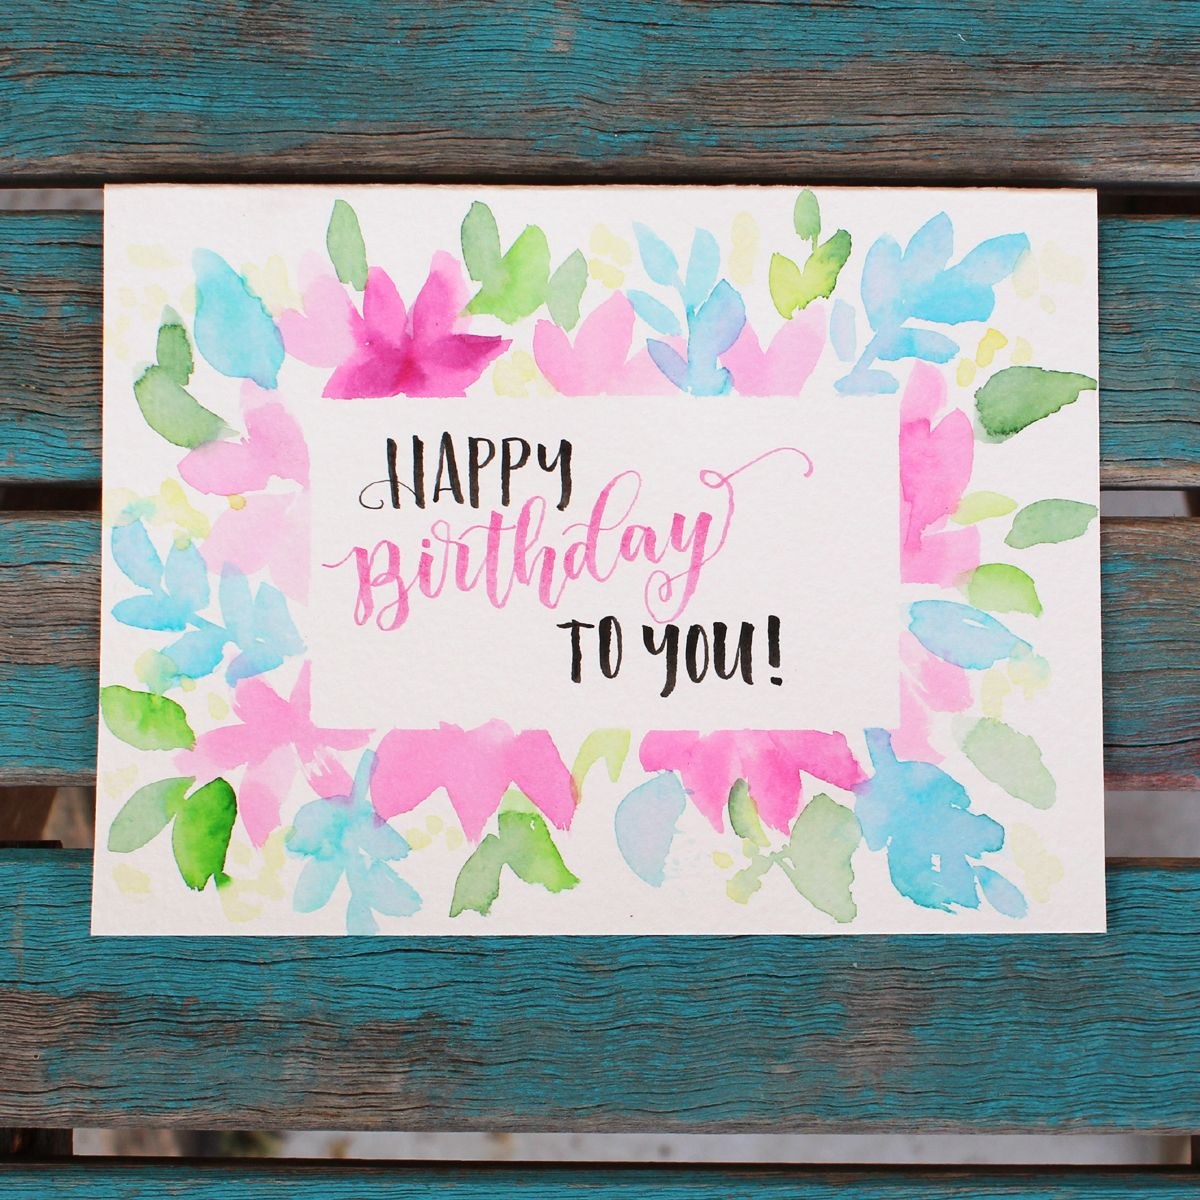 Watercolor Greeting Card Tombow Usa Blog Birthday Card Drawing Watercolor Hand Lettering Watercolor Birthday Cards